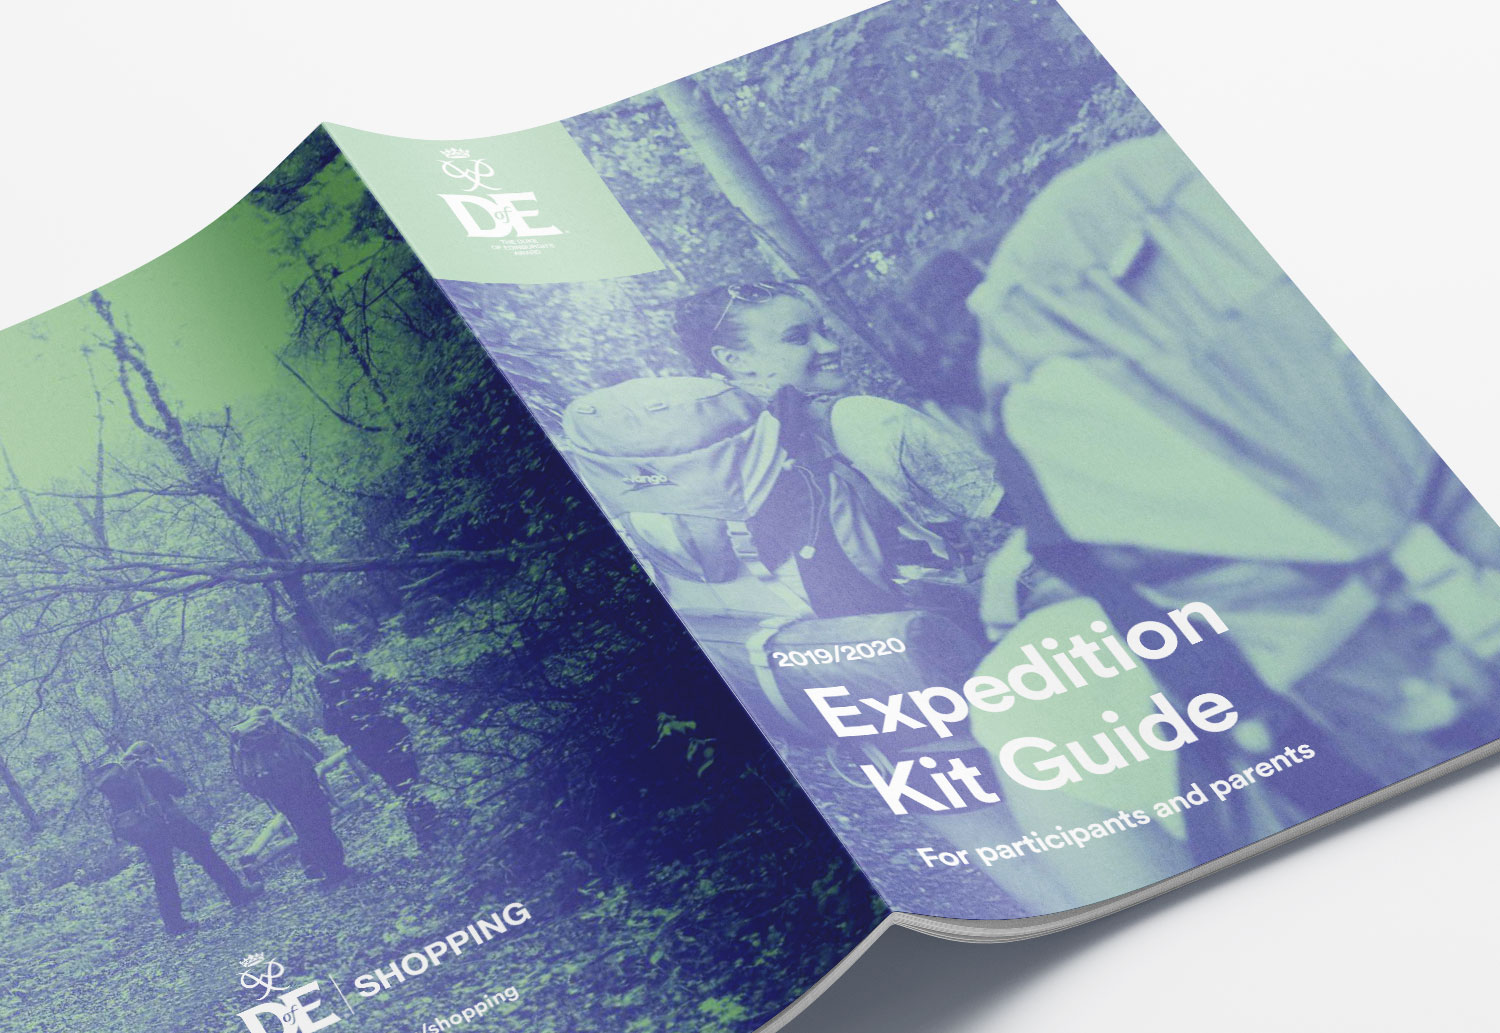 Duke of Edinburgh's Award Expedition | Kit Guide 2019 Design